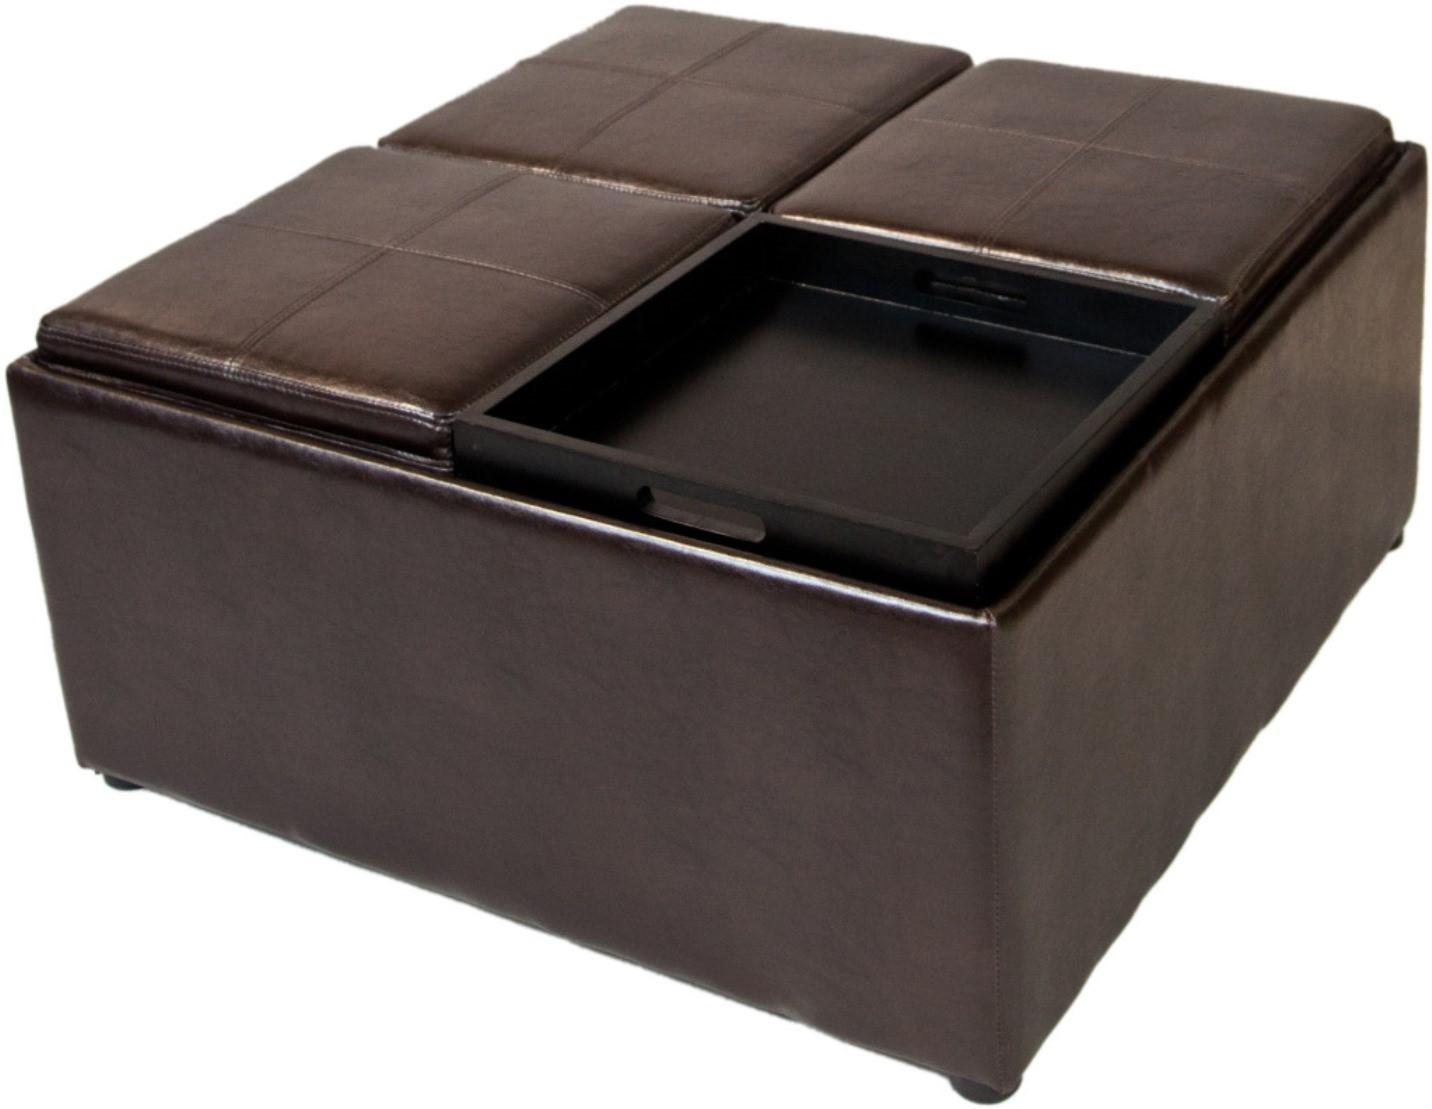 Coffee Table Storage Ottoman W 4 Serving Trays PU Leather Brown